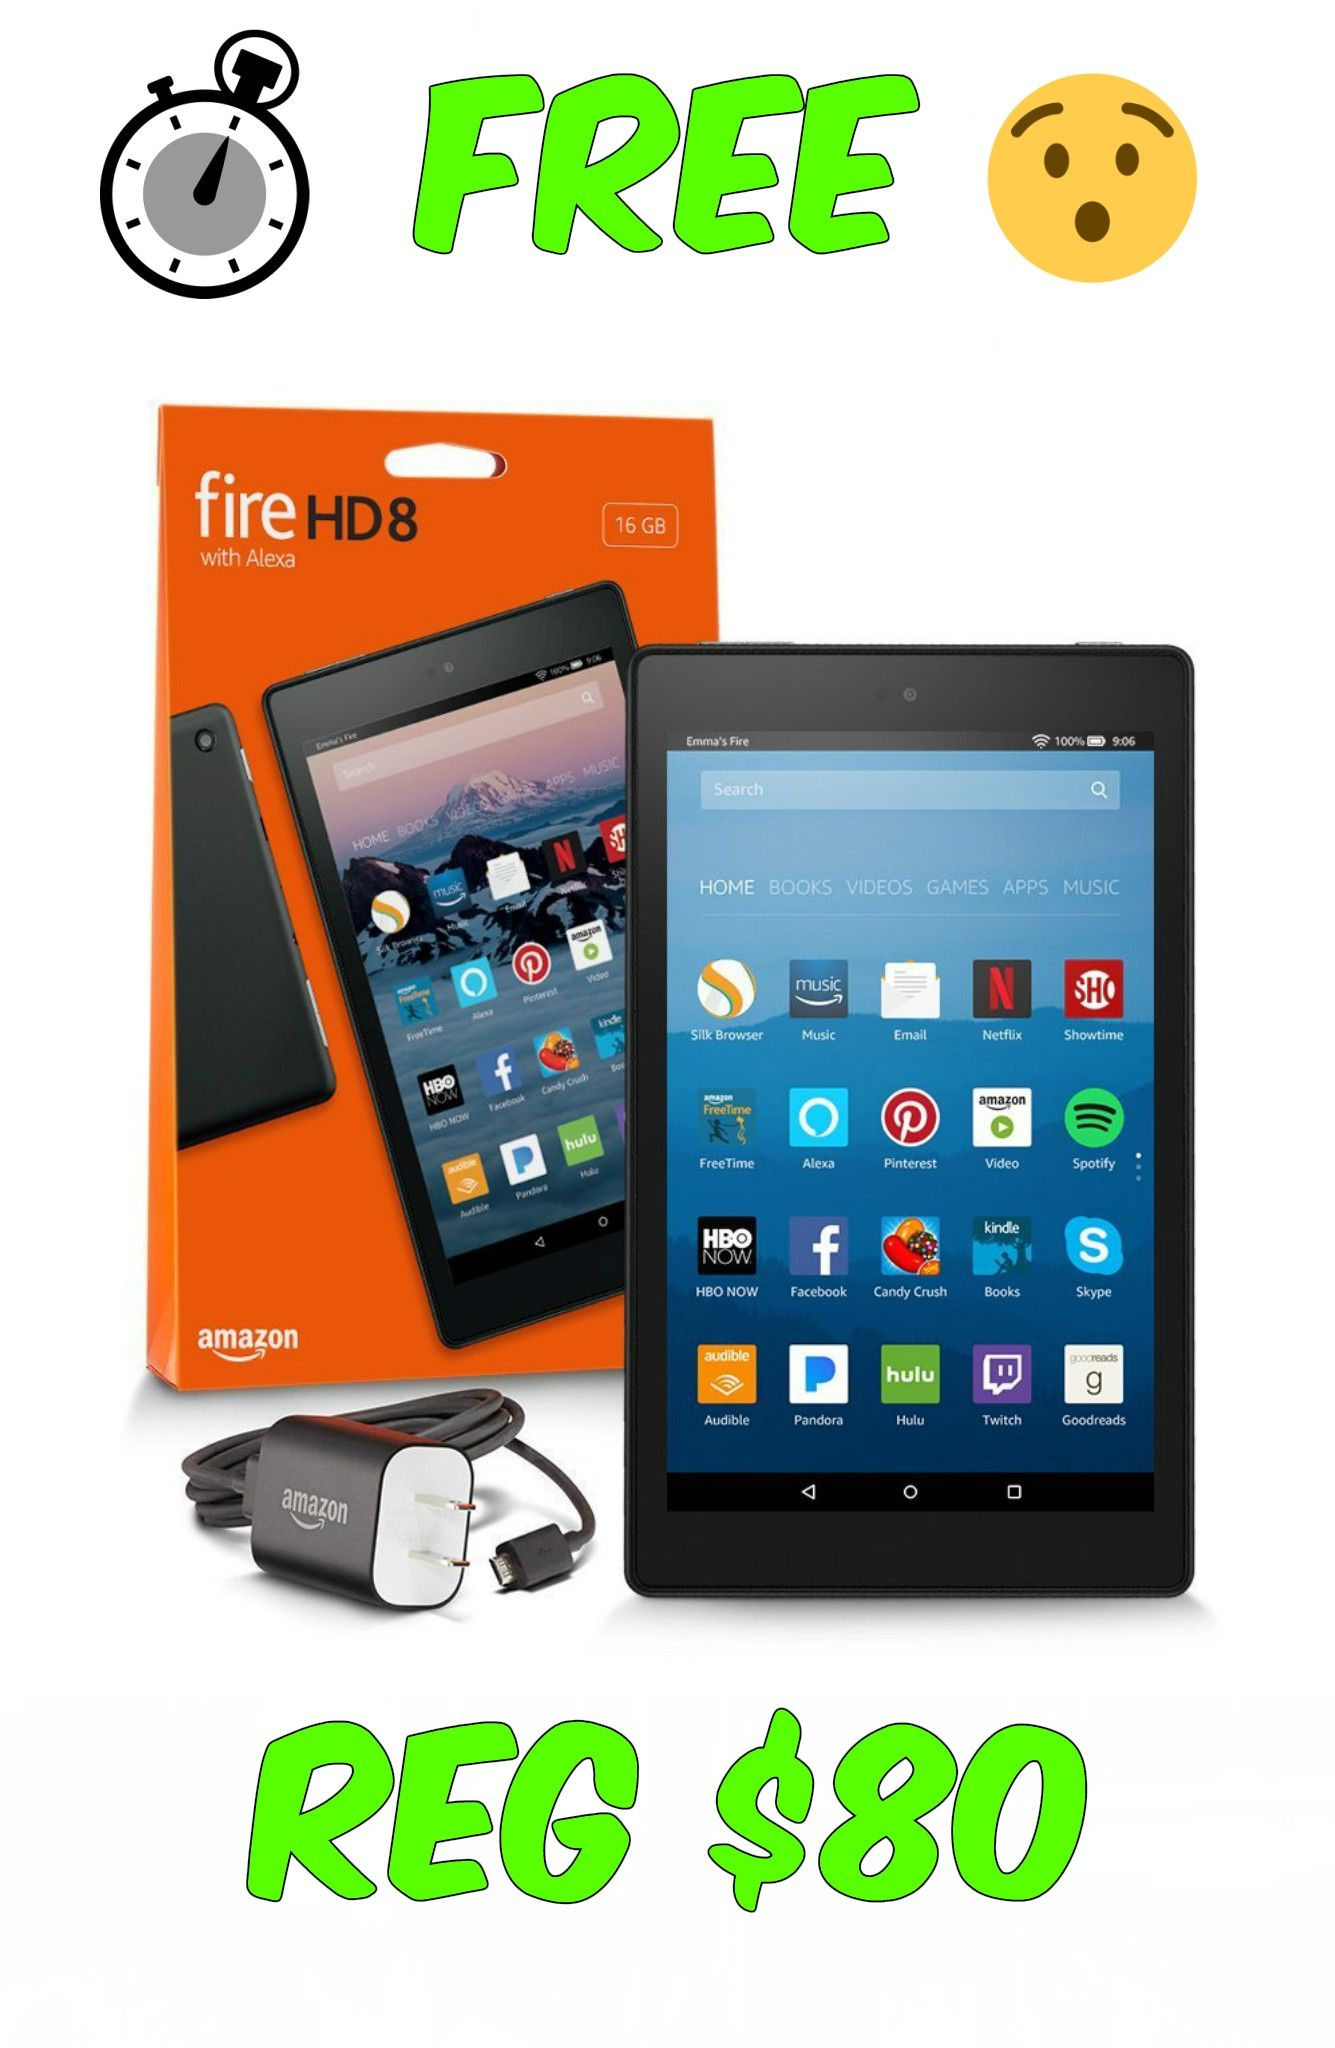 free amazon kindle fire hd 8 tablet with alexa coupons freebies rh pinterest com